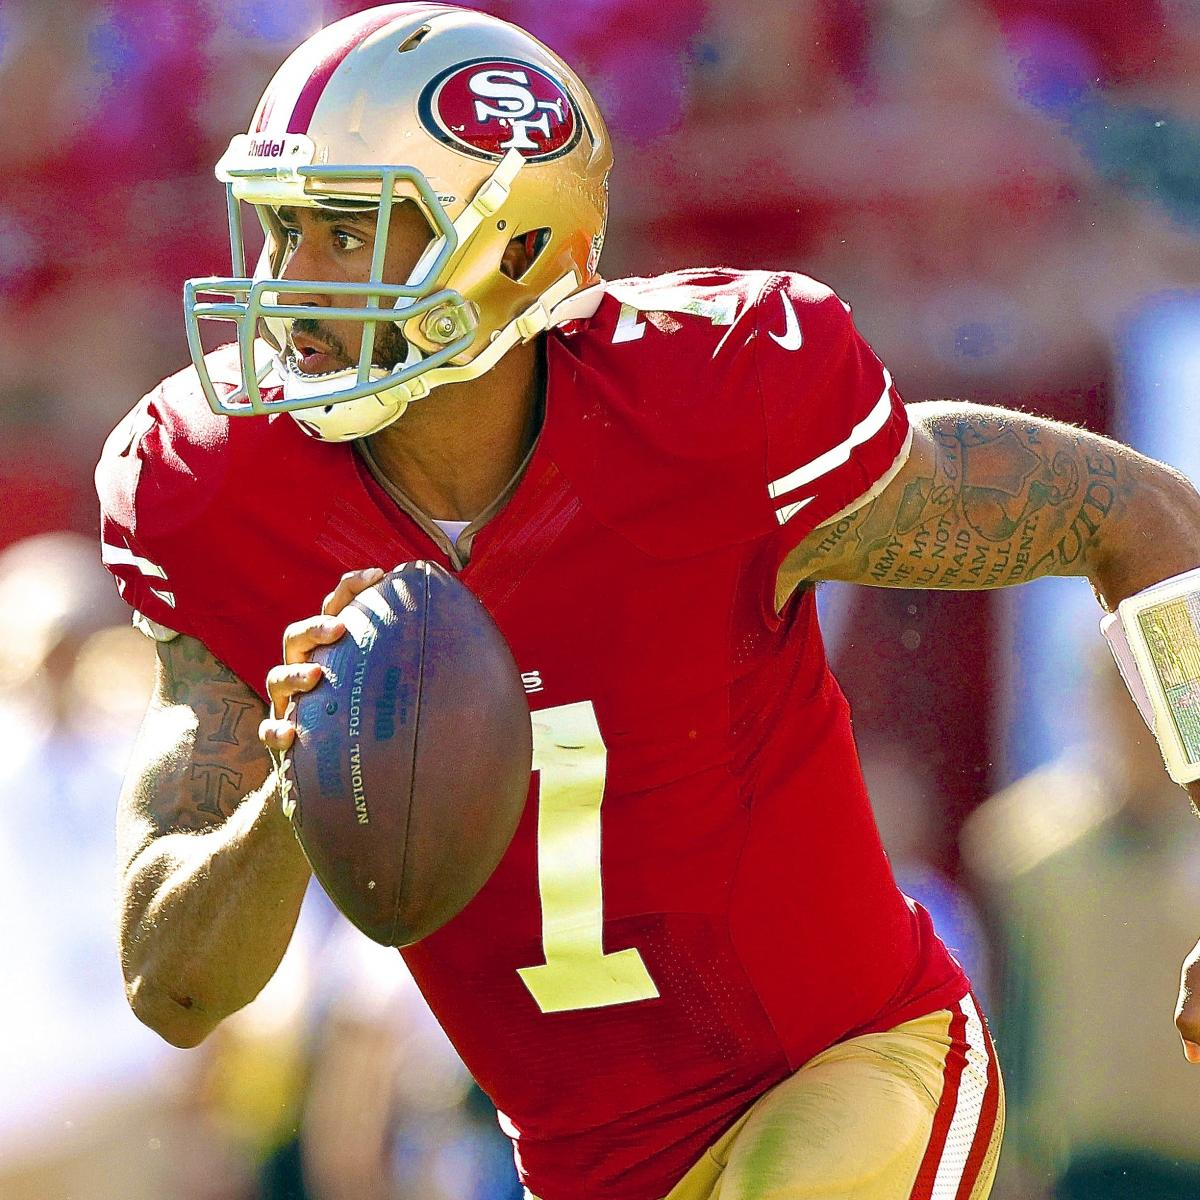 Seahawks vs. 49ers: Live Score, Highlights and Analysis ...